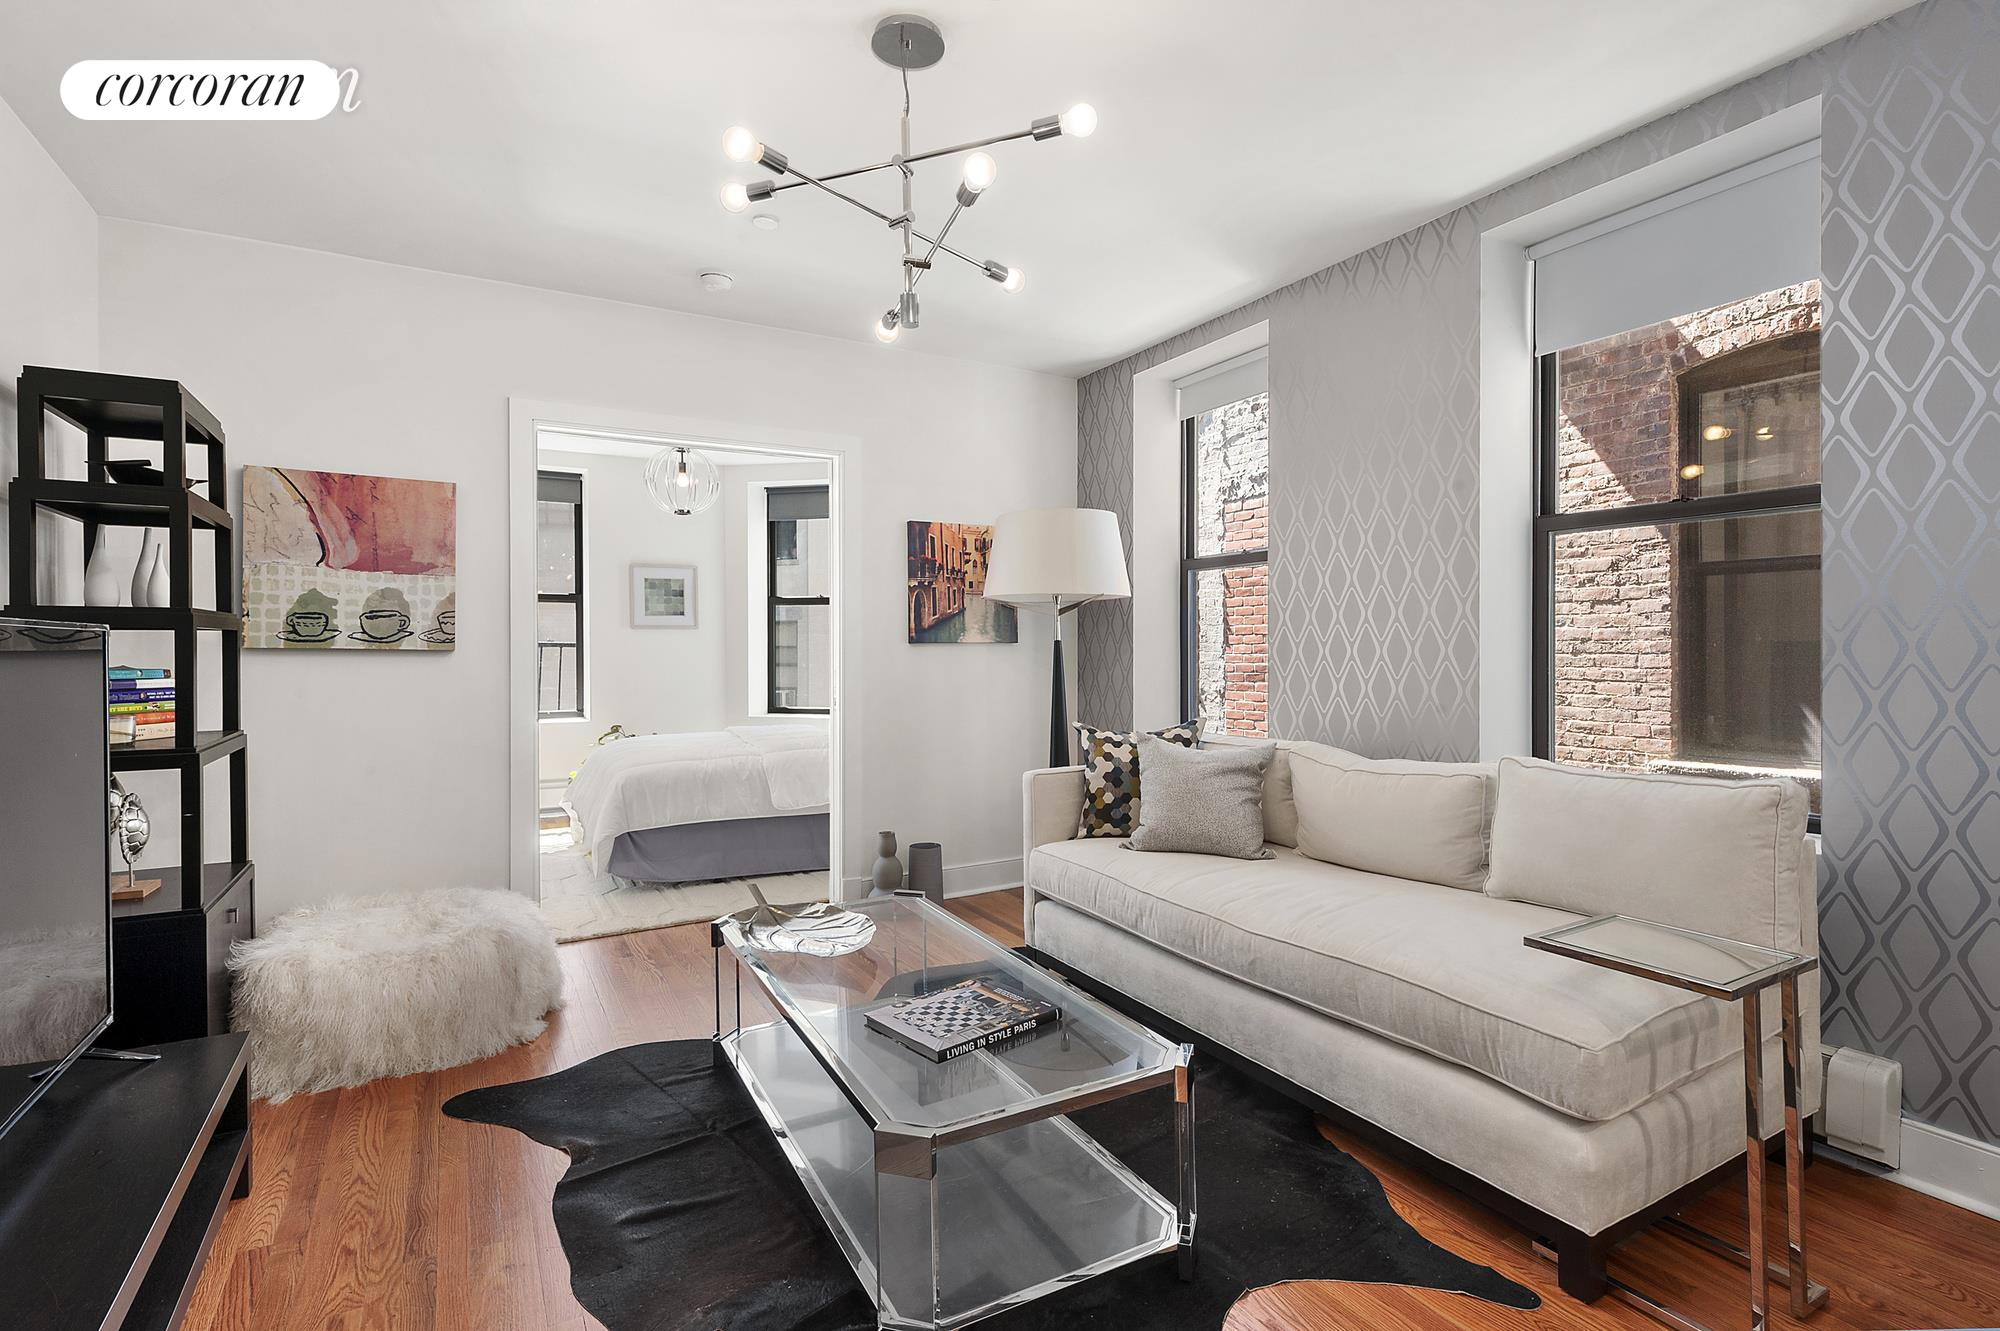 305 West 150th Street, 504, Living Room